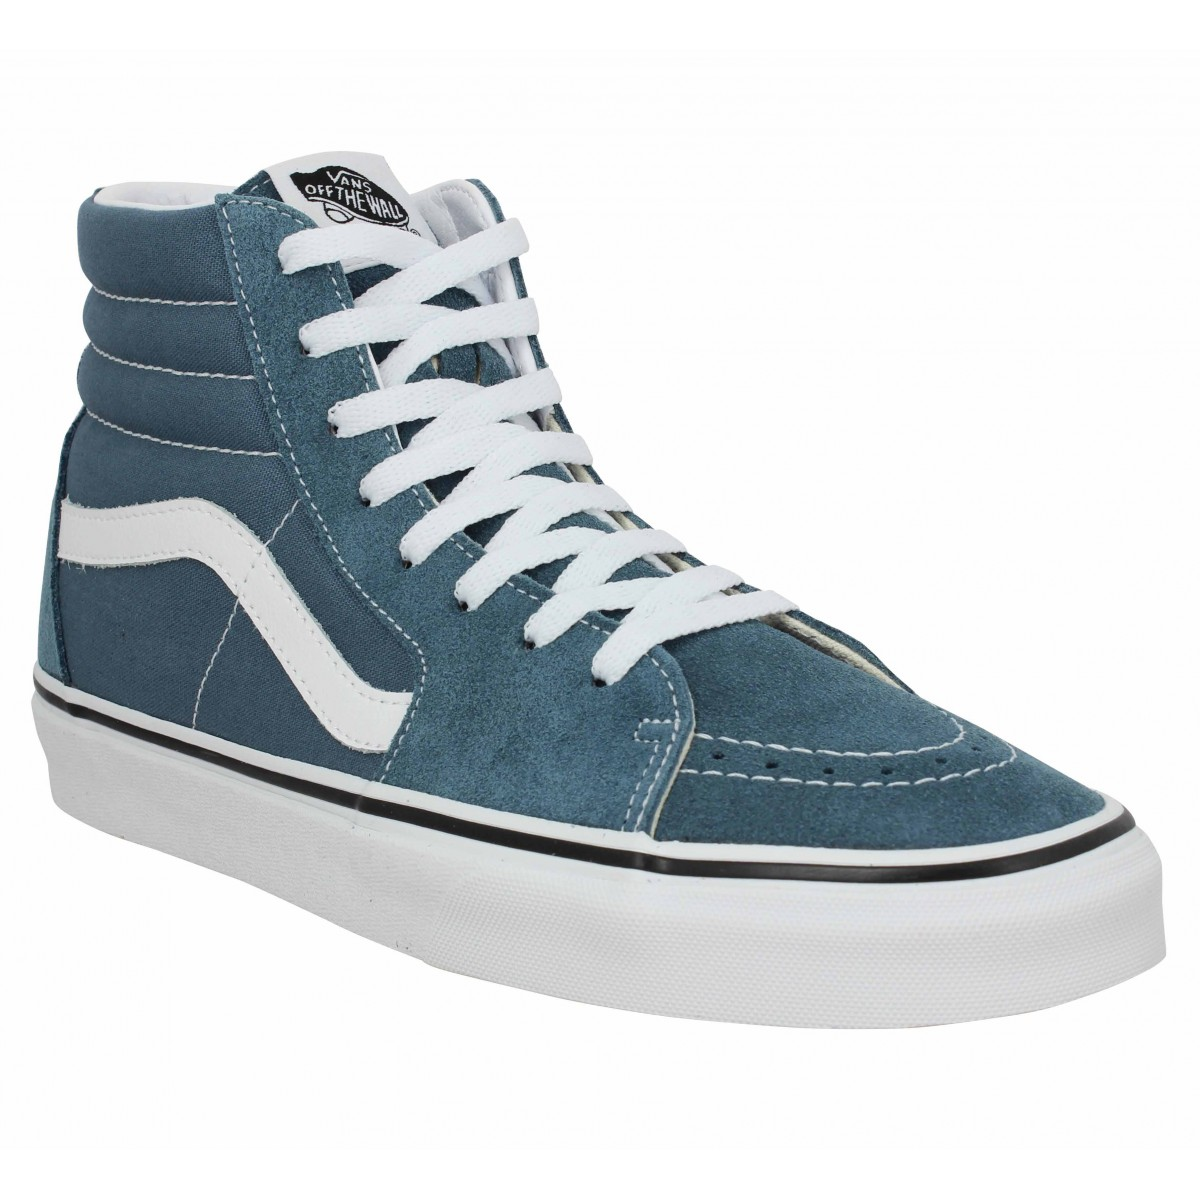 Baskets VANS SK8 Hi velours toile Homme Blue Mirage